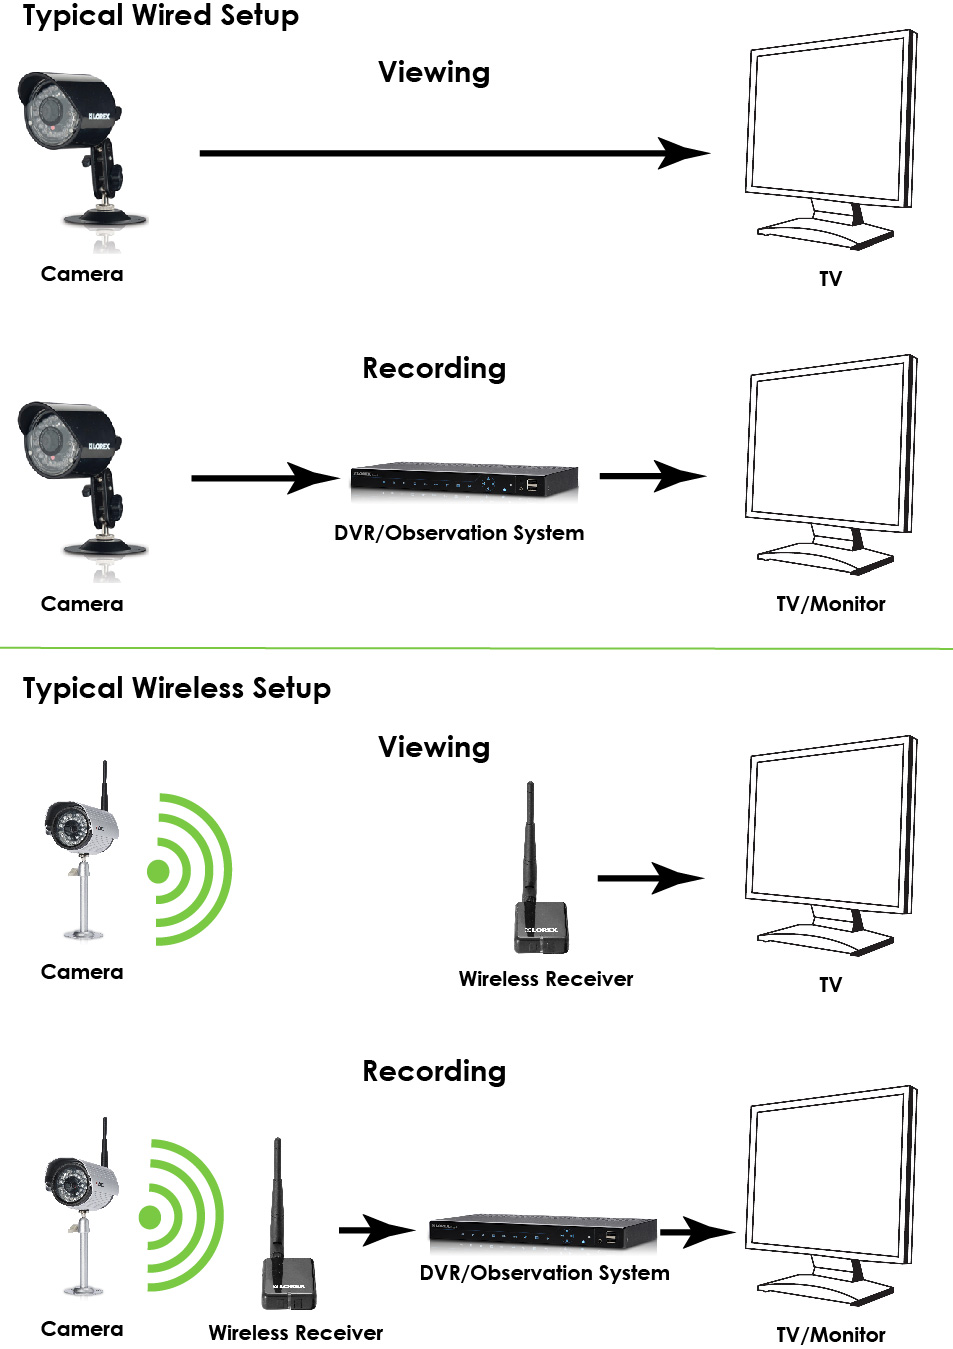 Wired vs wireless setup diagrams digital wireless cameras frequently asked questions lorex lorex camera wiring diagram at nearapp.co